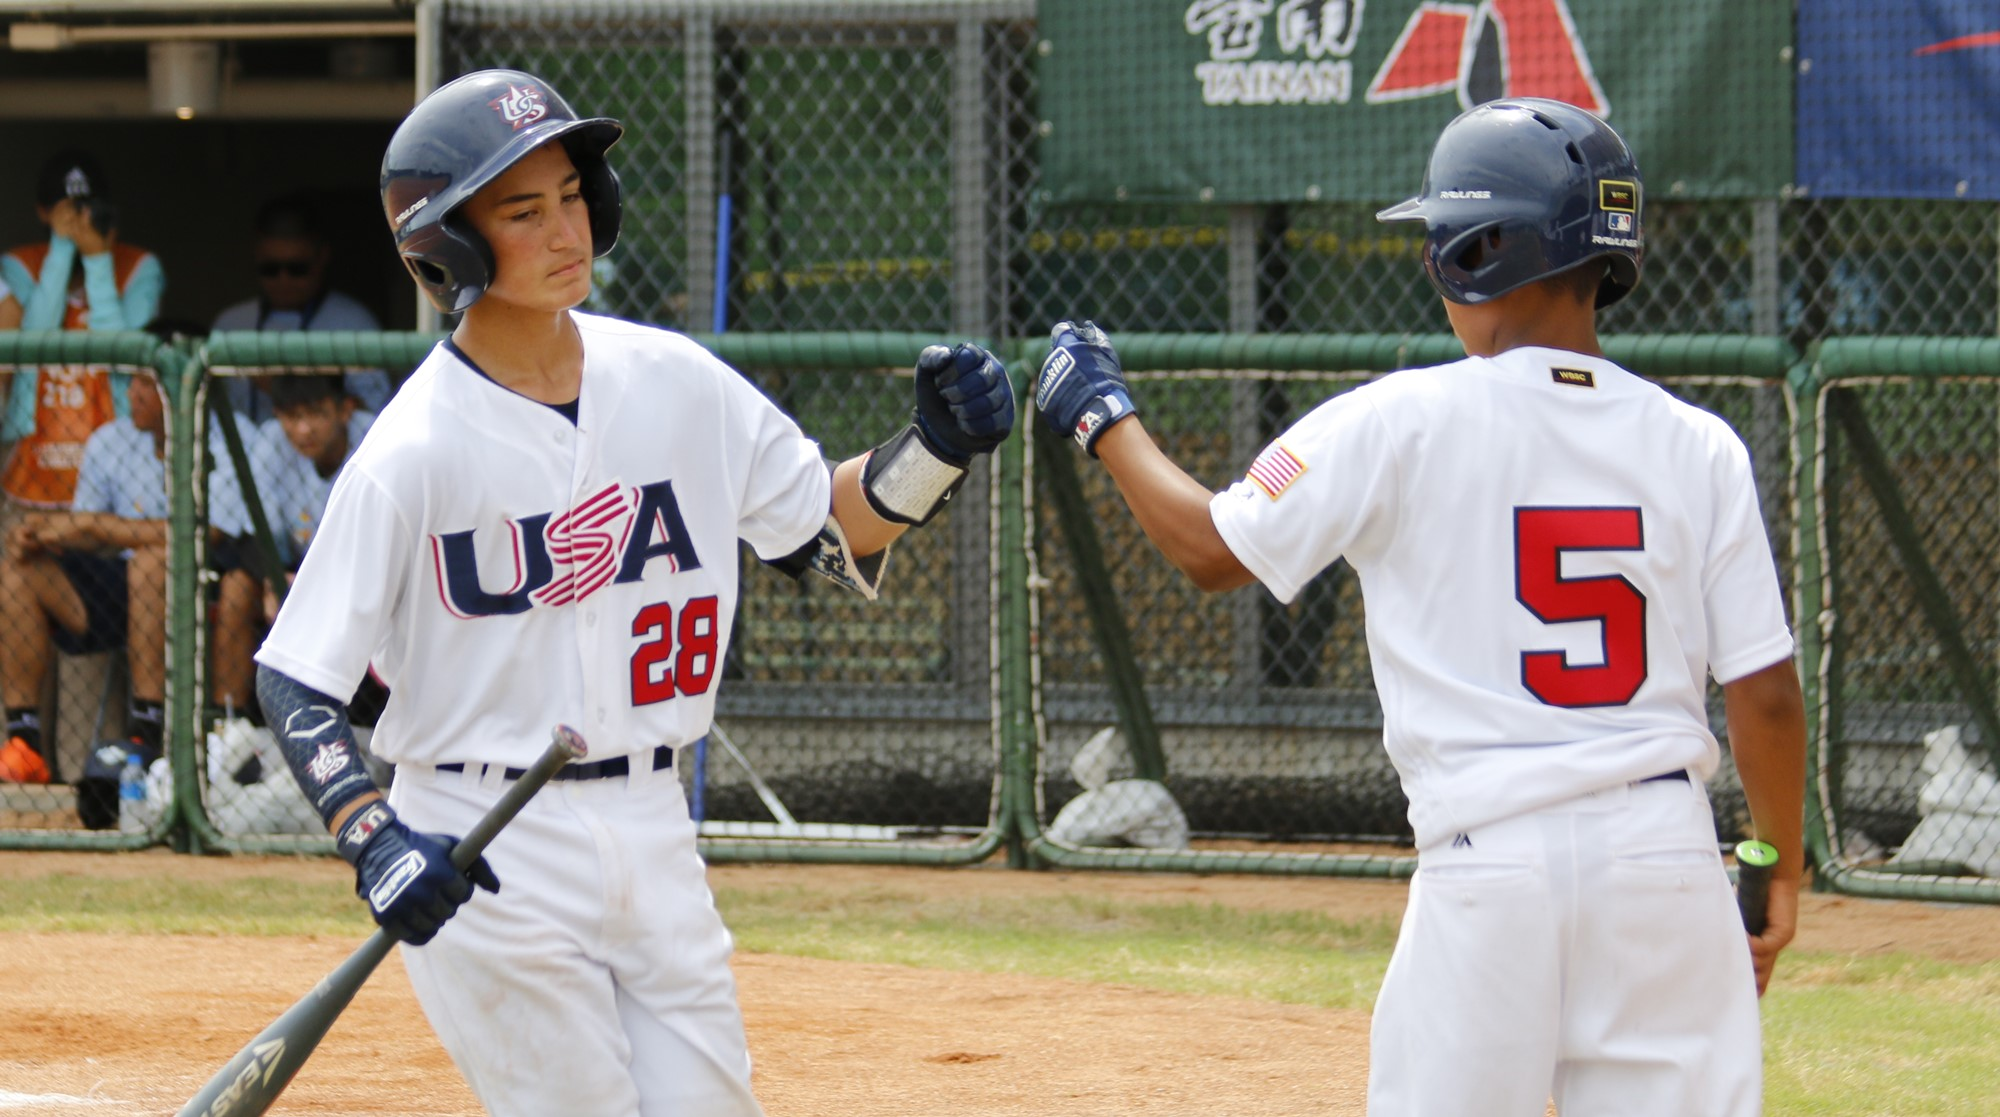 John Dolan and Brenden Lewis celebrate a run for the USA